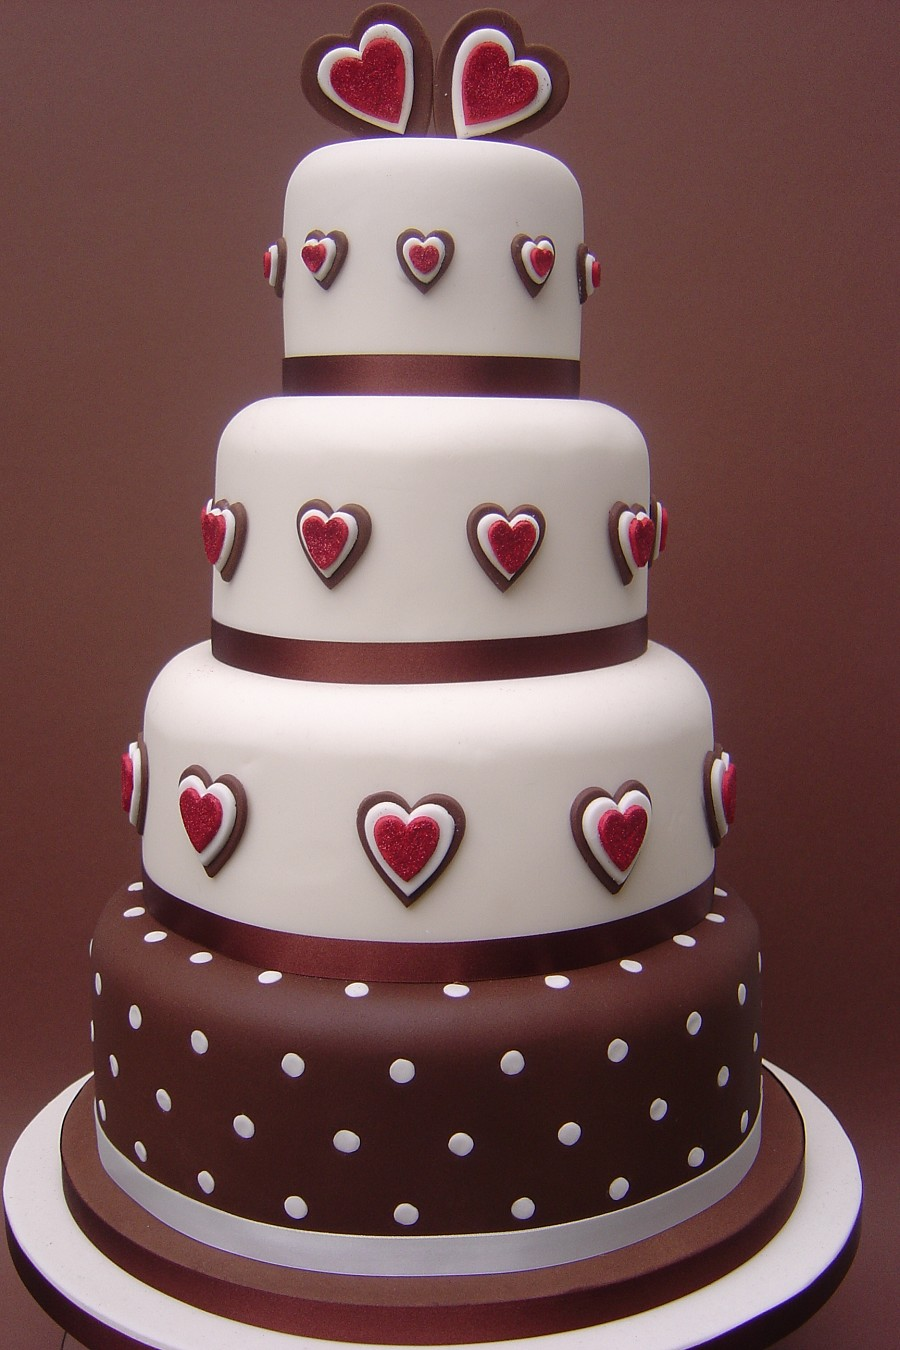 Cake Design Ideas For Wedding : Wedding cake Ideas collection